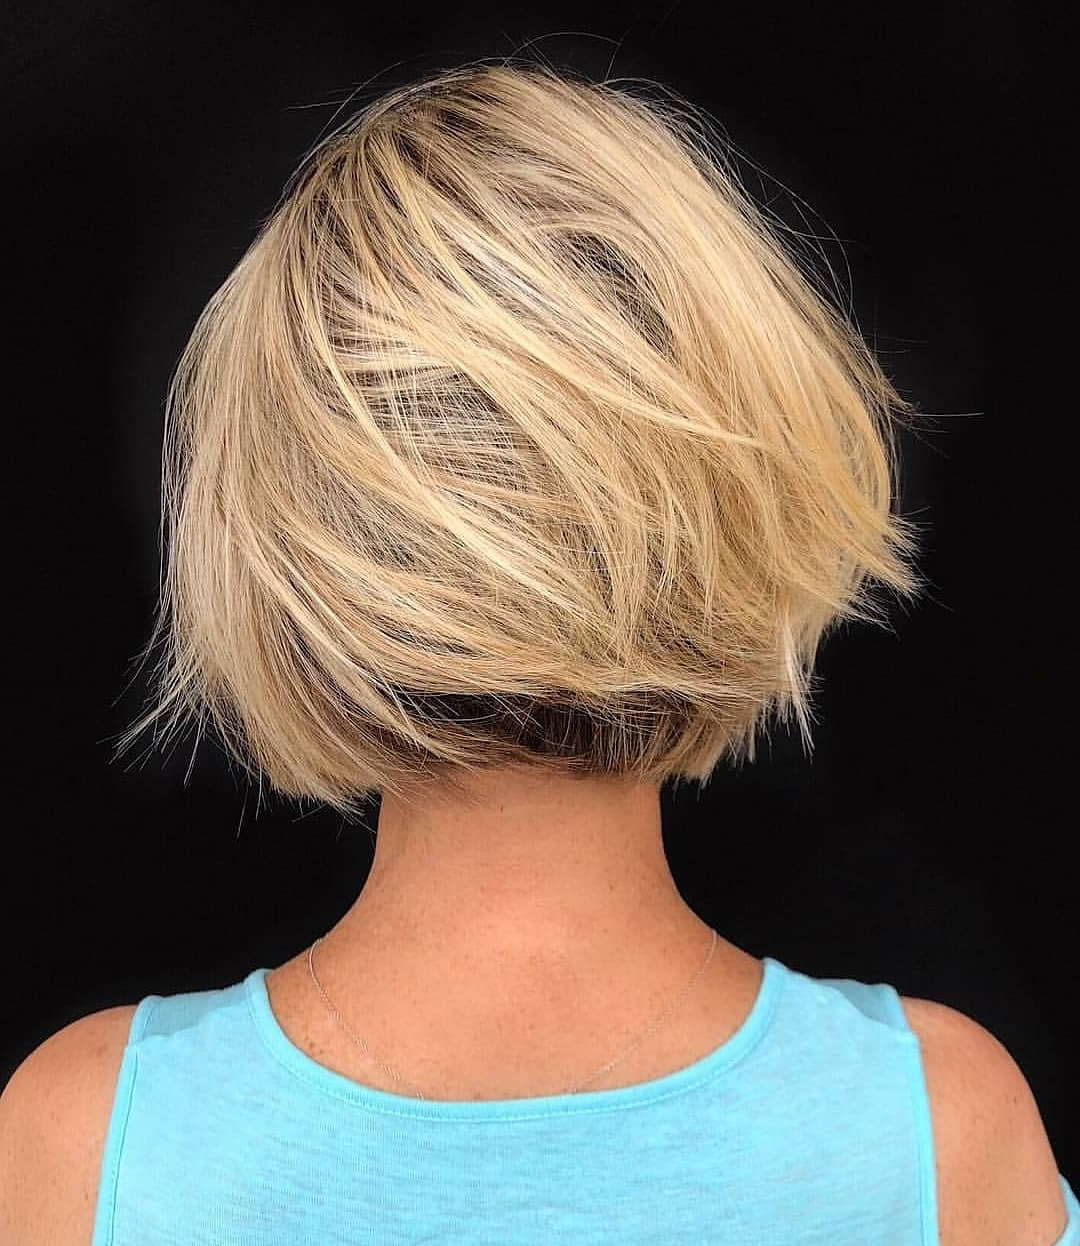 Top 10 Low Maintenance Short Bob Cuts For Thick Hair, Short Inside Classic Layered Bob Hairstyles For Thick Hair (View 20 of 20)